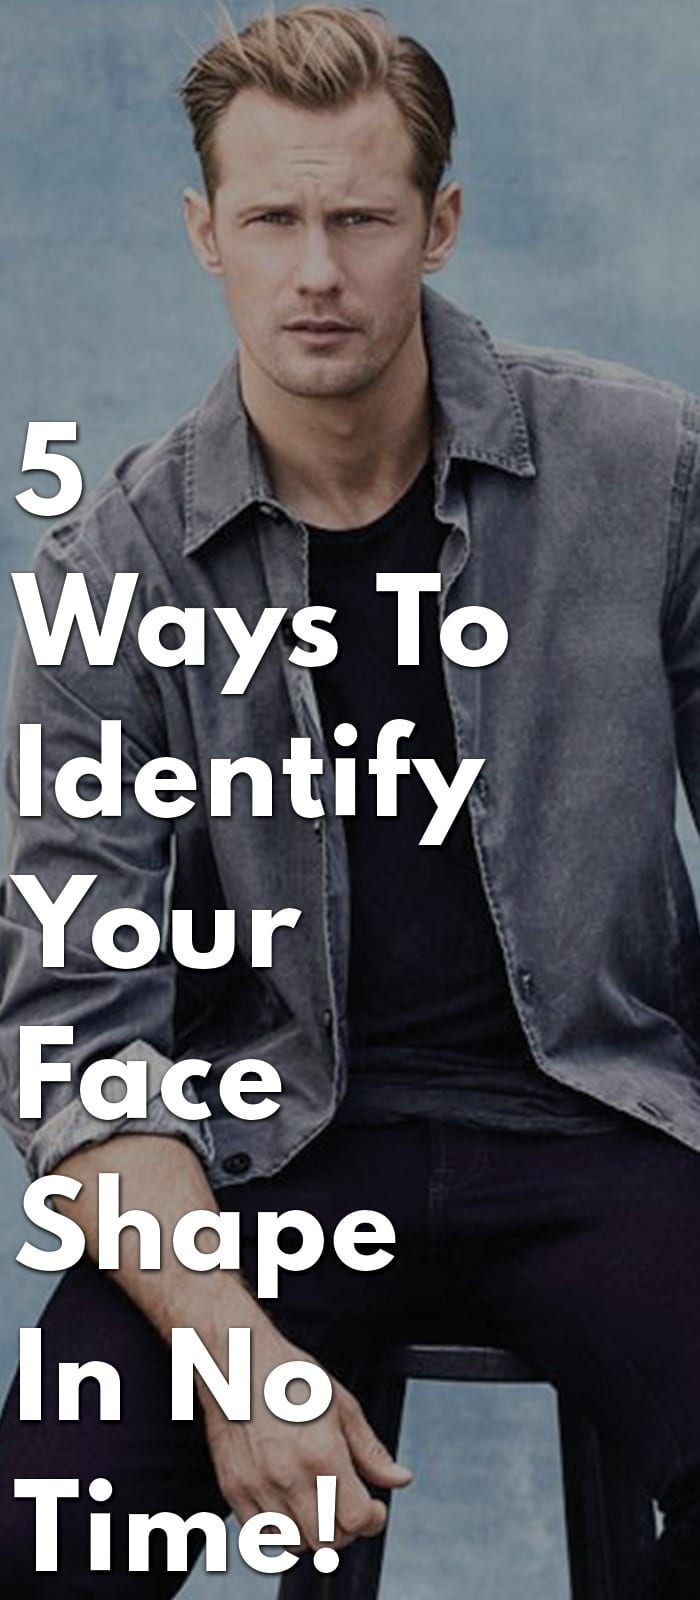 5-Ways-To-Identify-Your-Face-Shape-In-No-Time!